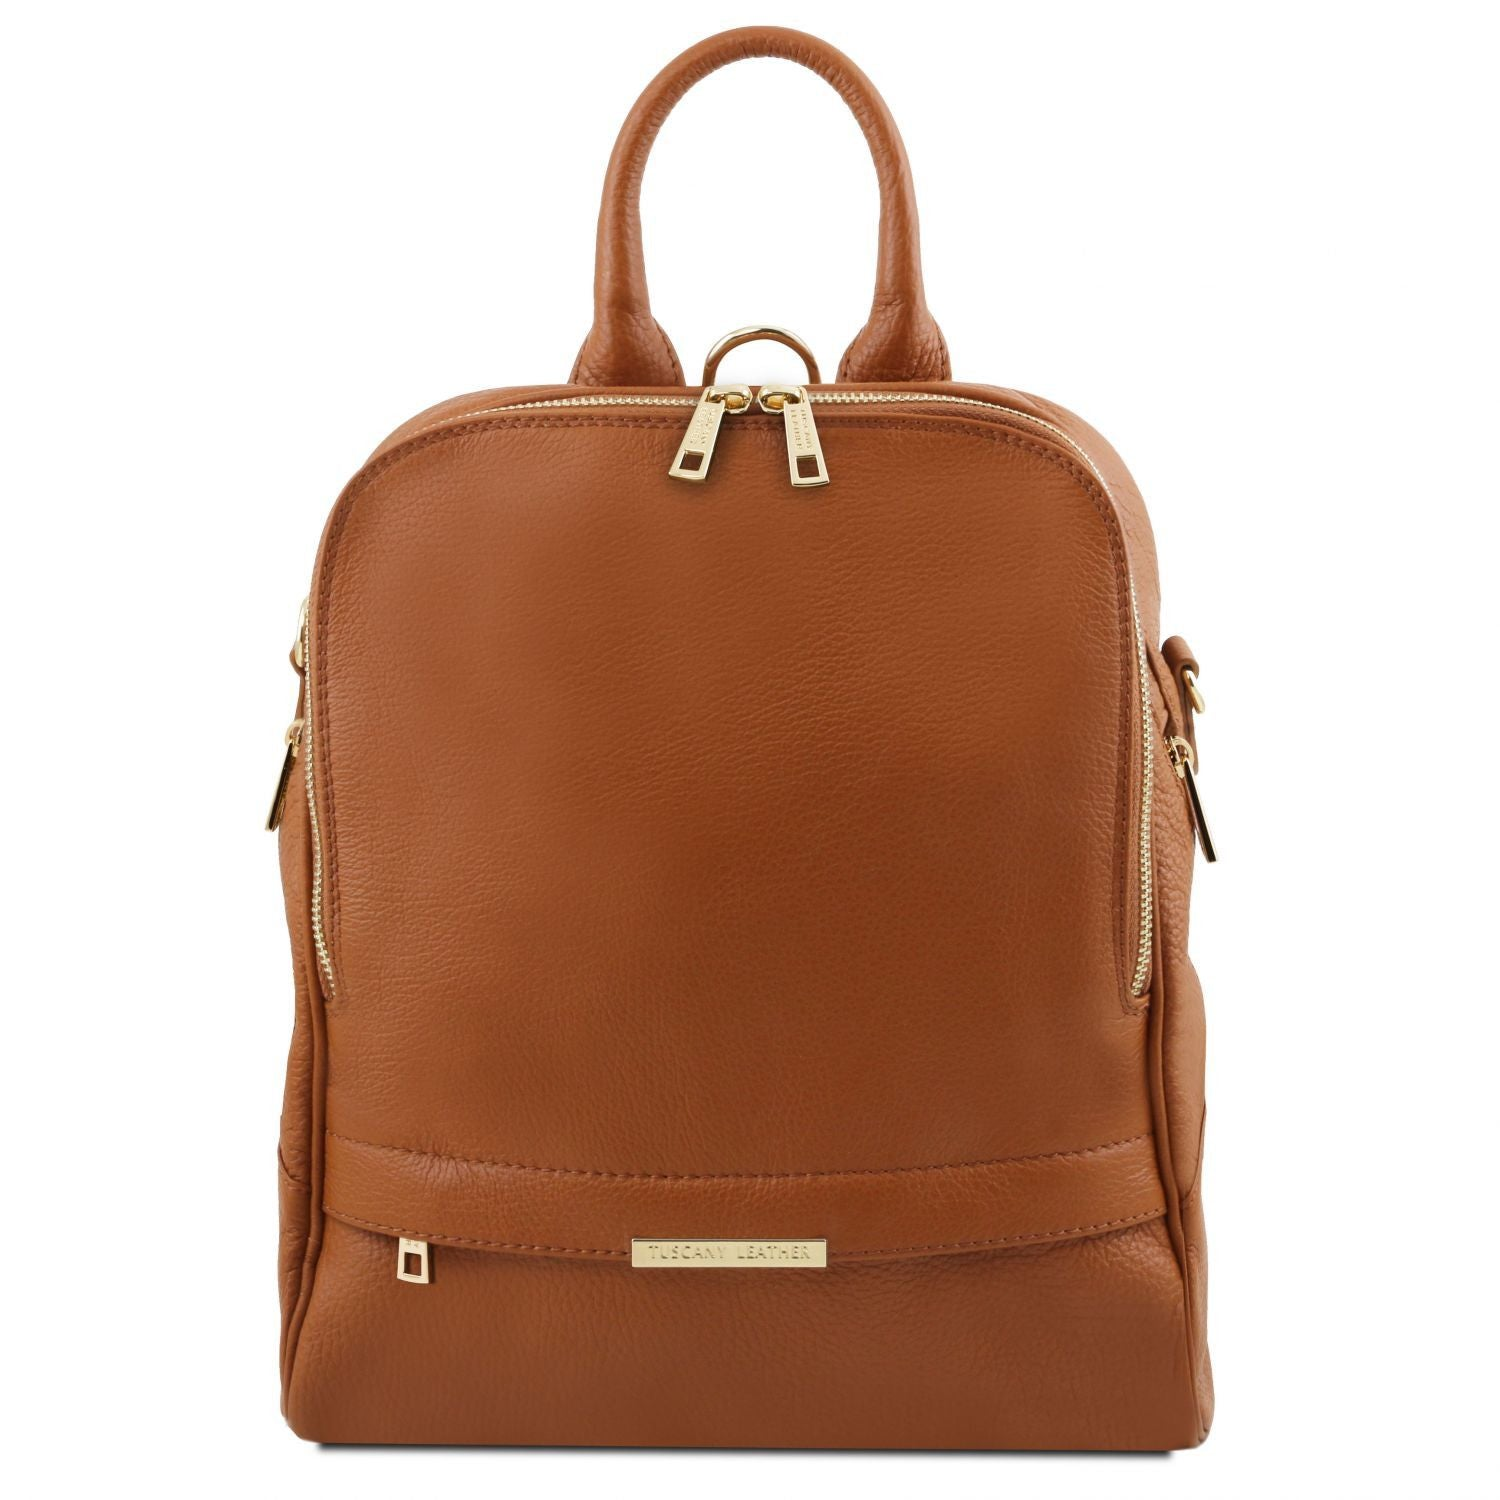 TL Bag - Soft leather backpack for women (TL141376) - Leather backpacks for women | DILUSSOBAGS